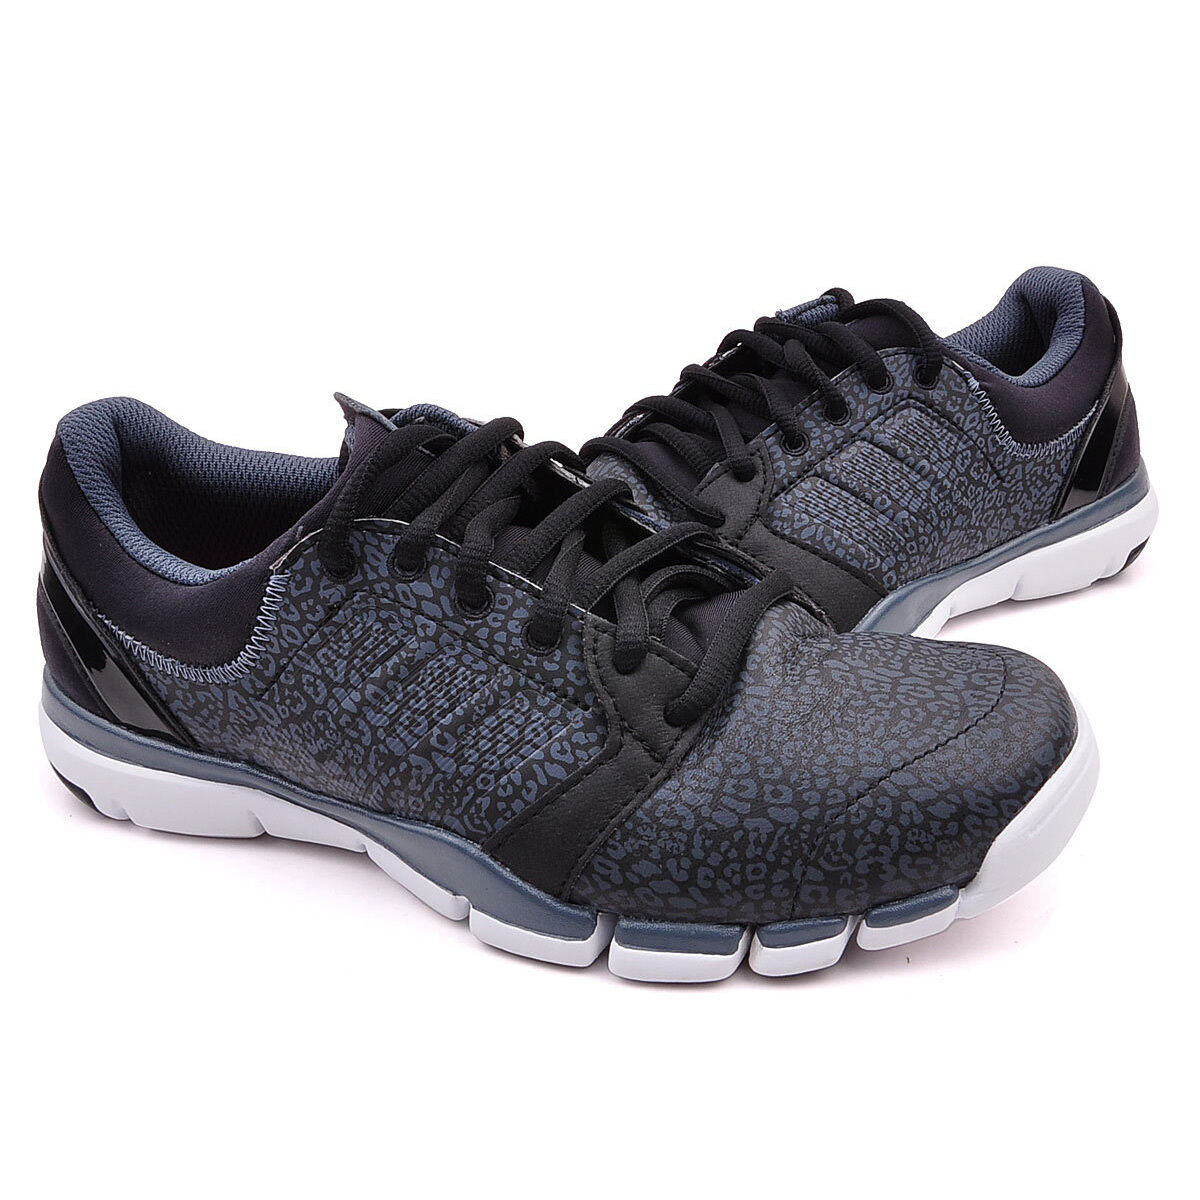 official photos 74df0 b8184 Adidas adipure Chaussure 360 Wo Hommes G96955 Sports trainer Chaussure  adipure Gris 0e61fa